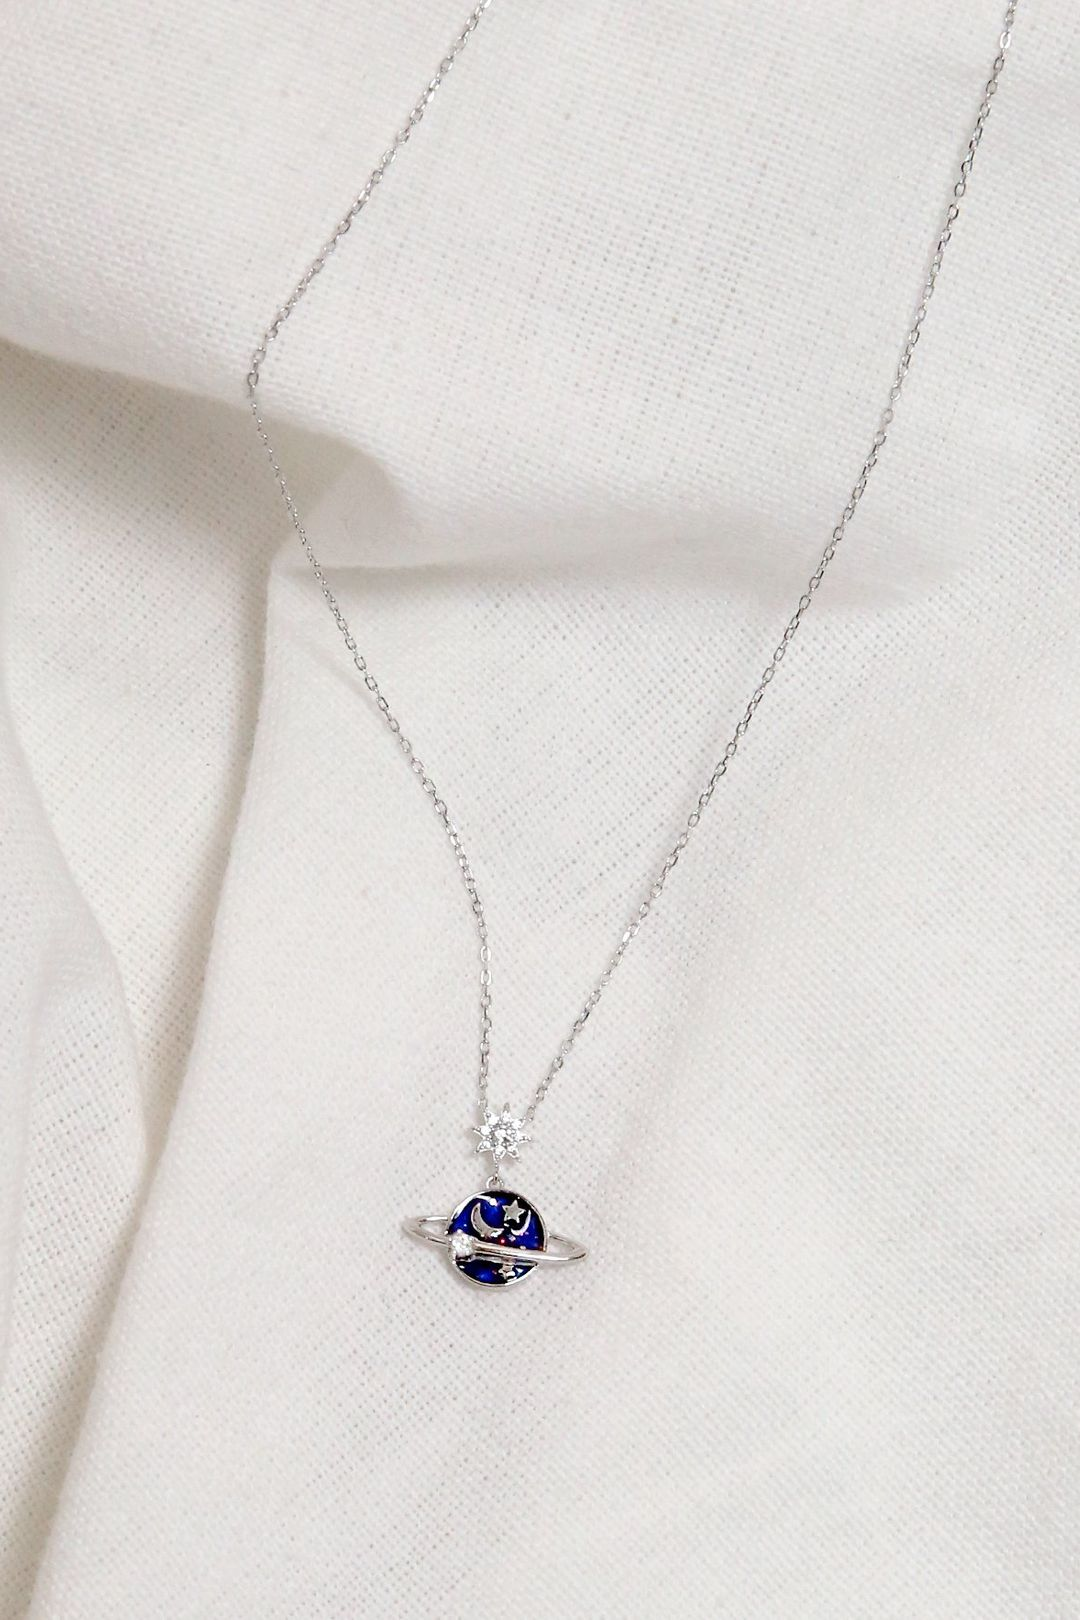 Starry Saturn Necklace (Silver)